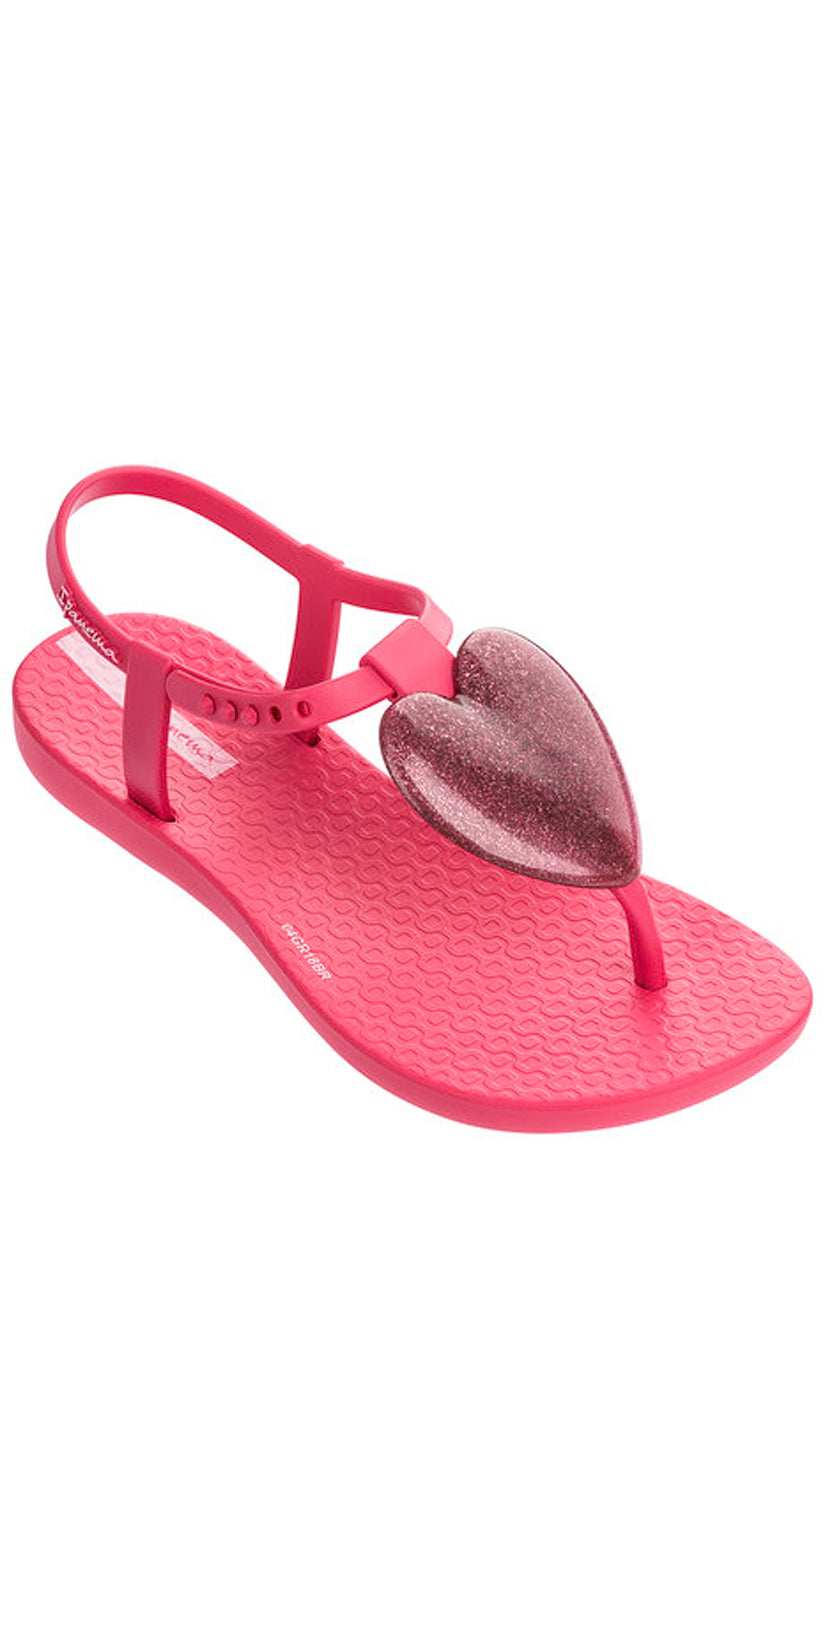 iPanema Kids Heart Love Sandal pink